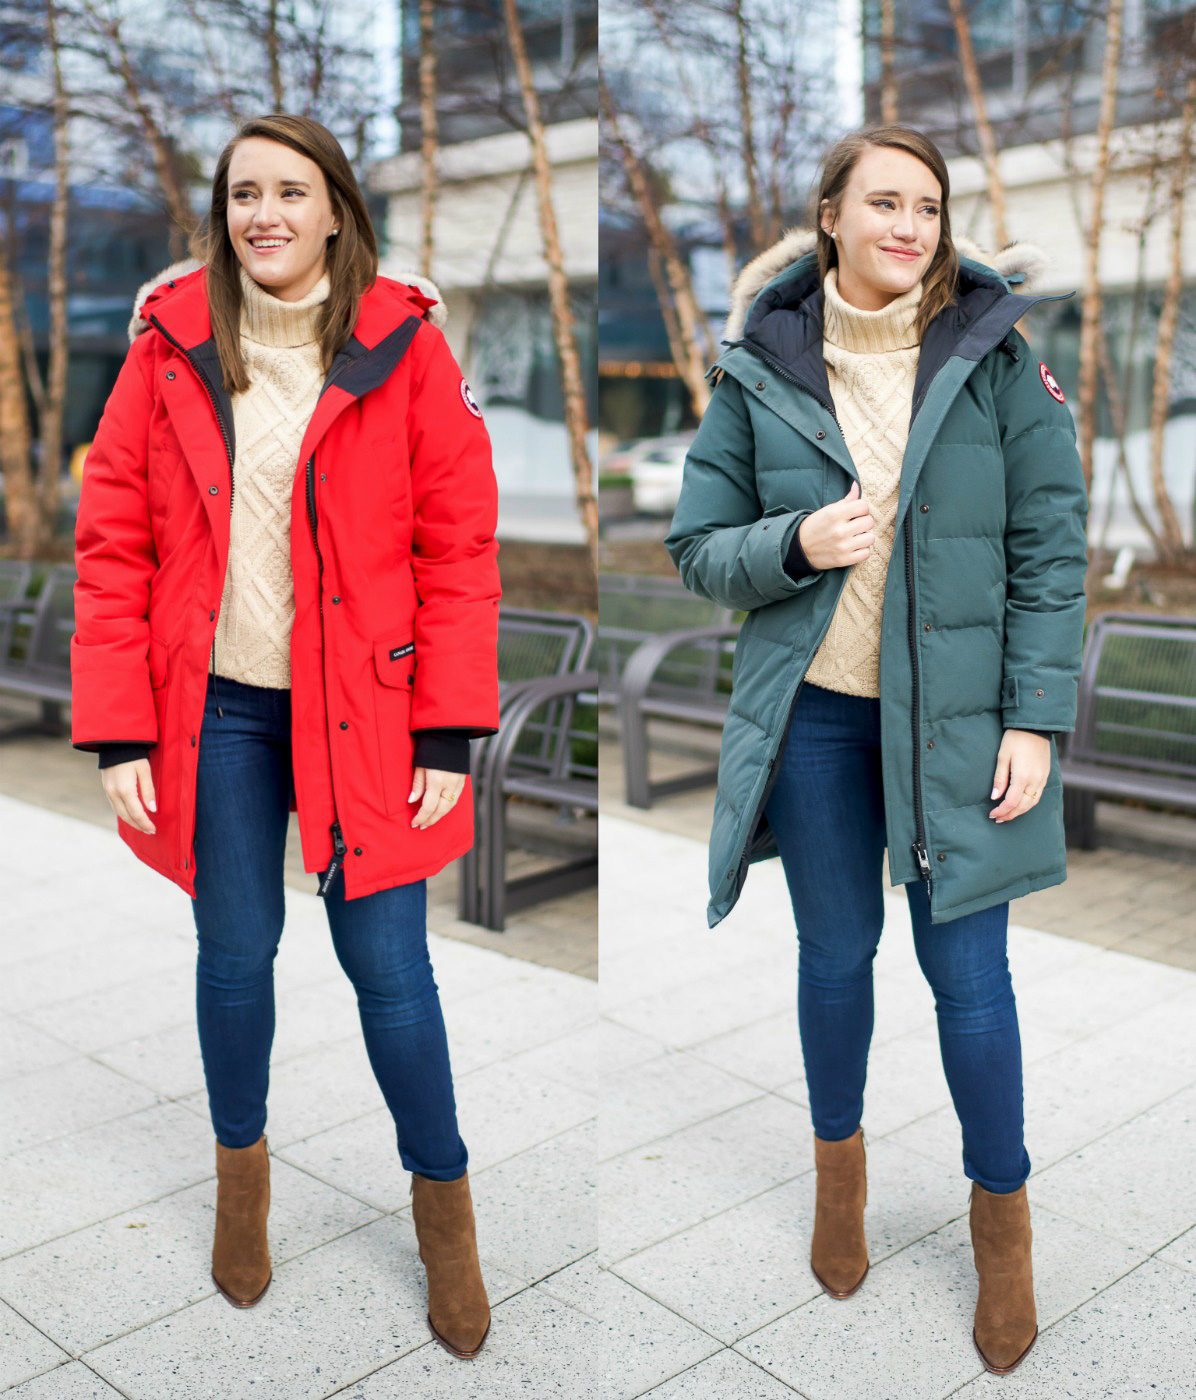 Canada Goose Review: Trillium vs Shelburne Parka | New York City Fashion and Lifestyle Blog | Covering the Bases